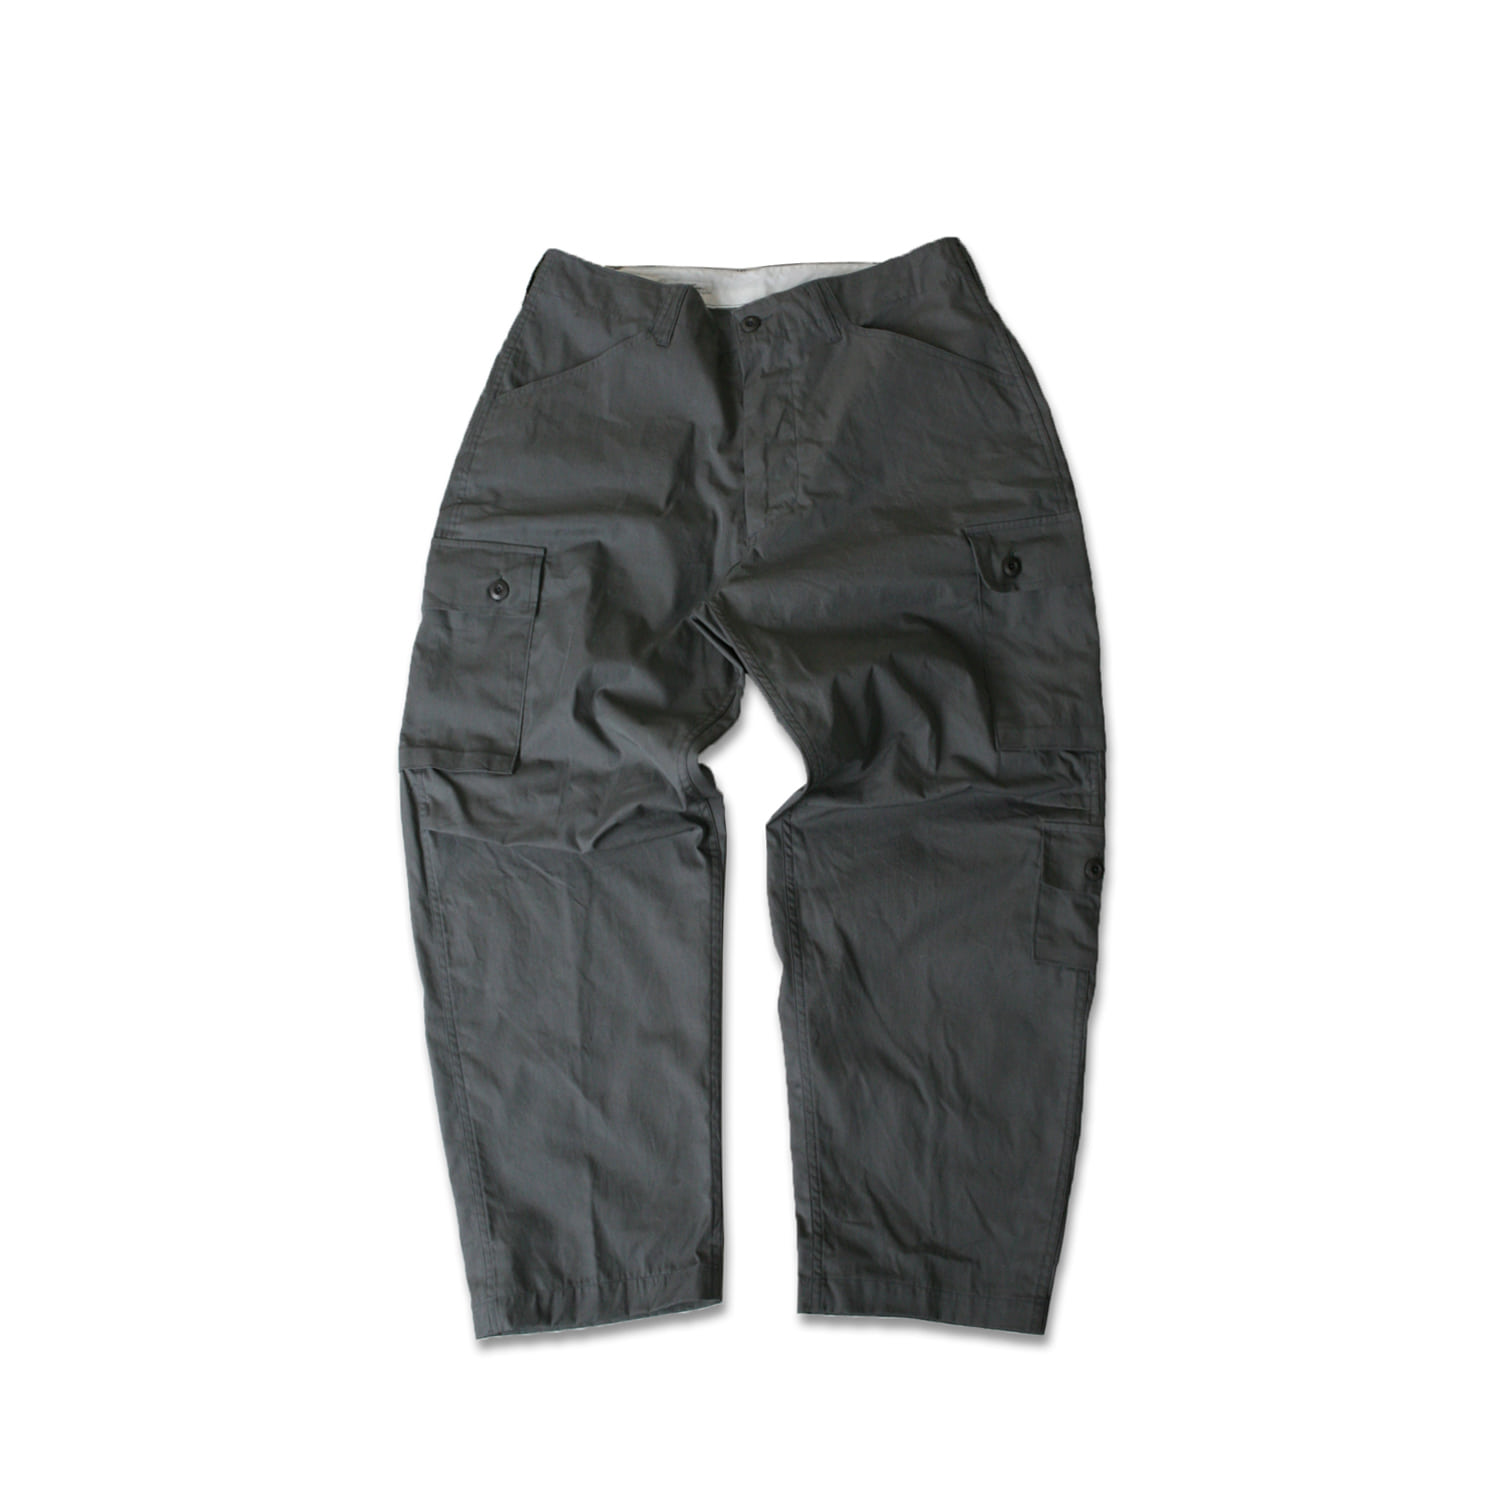 Jungle combat trousers grey